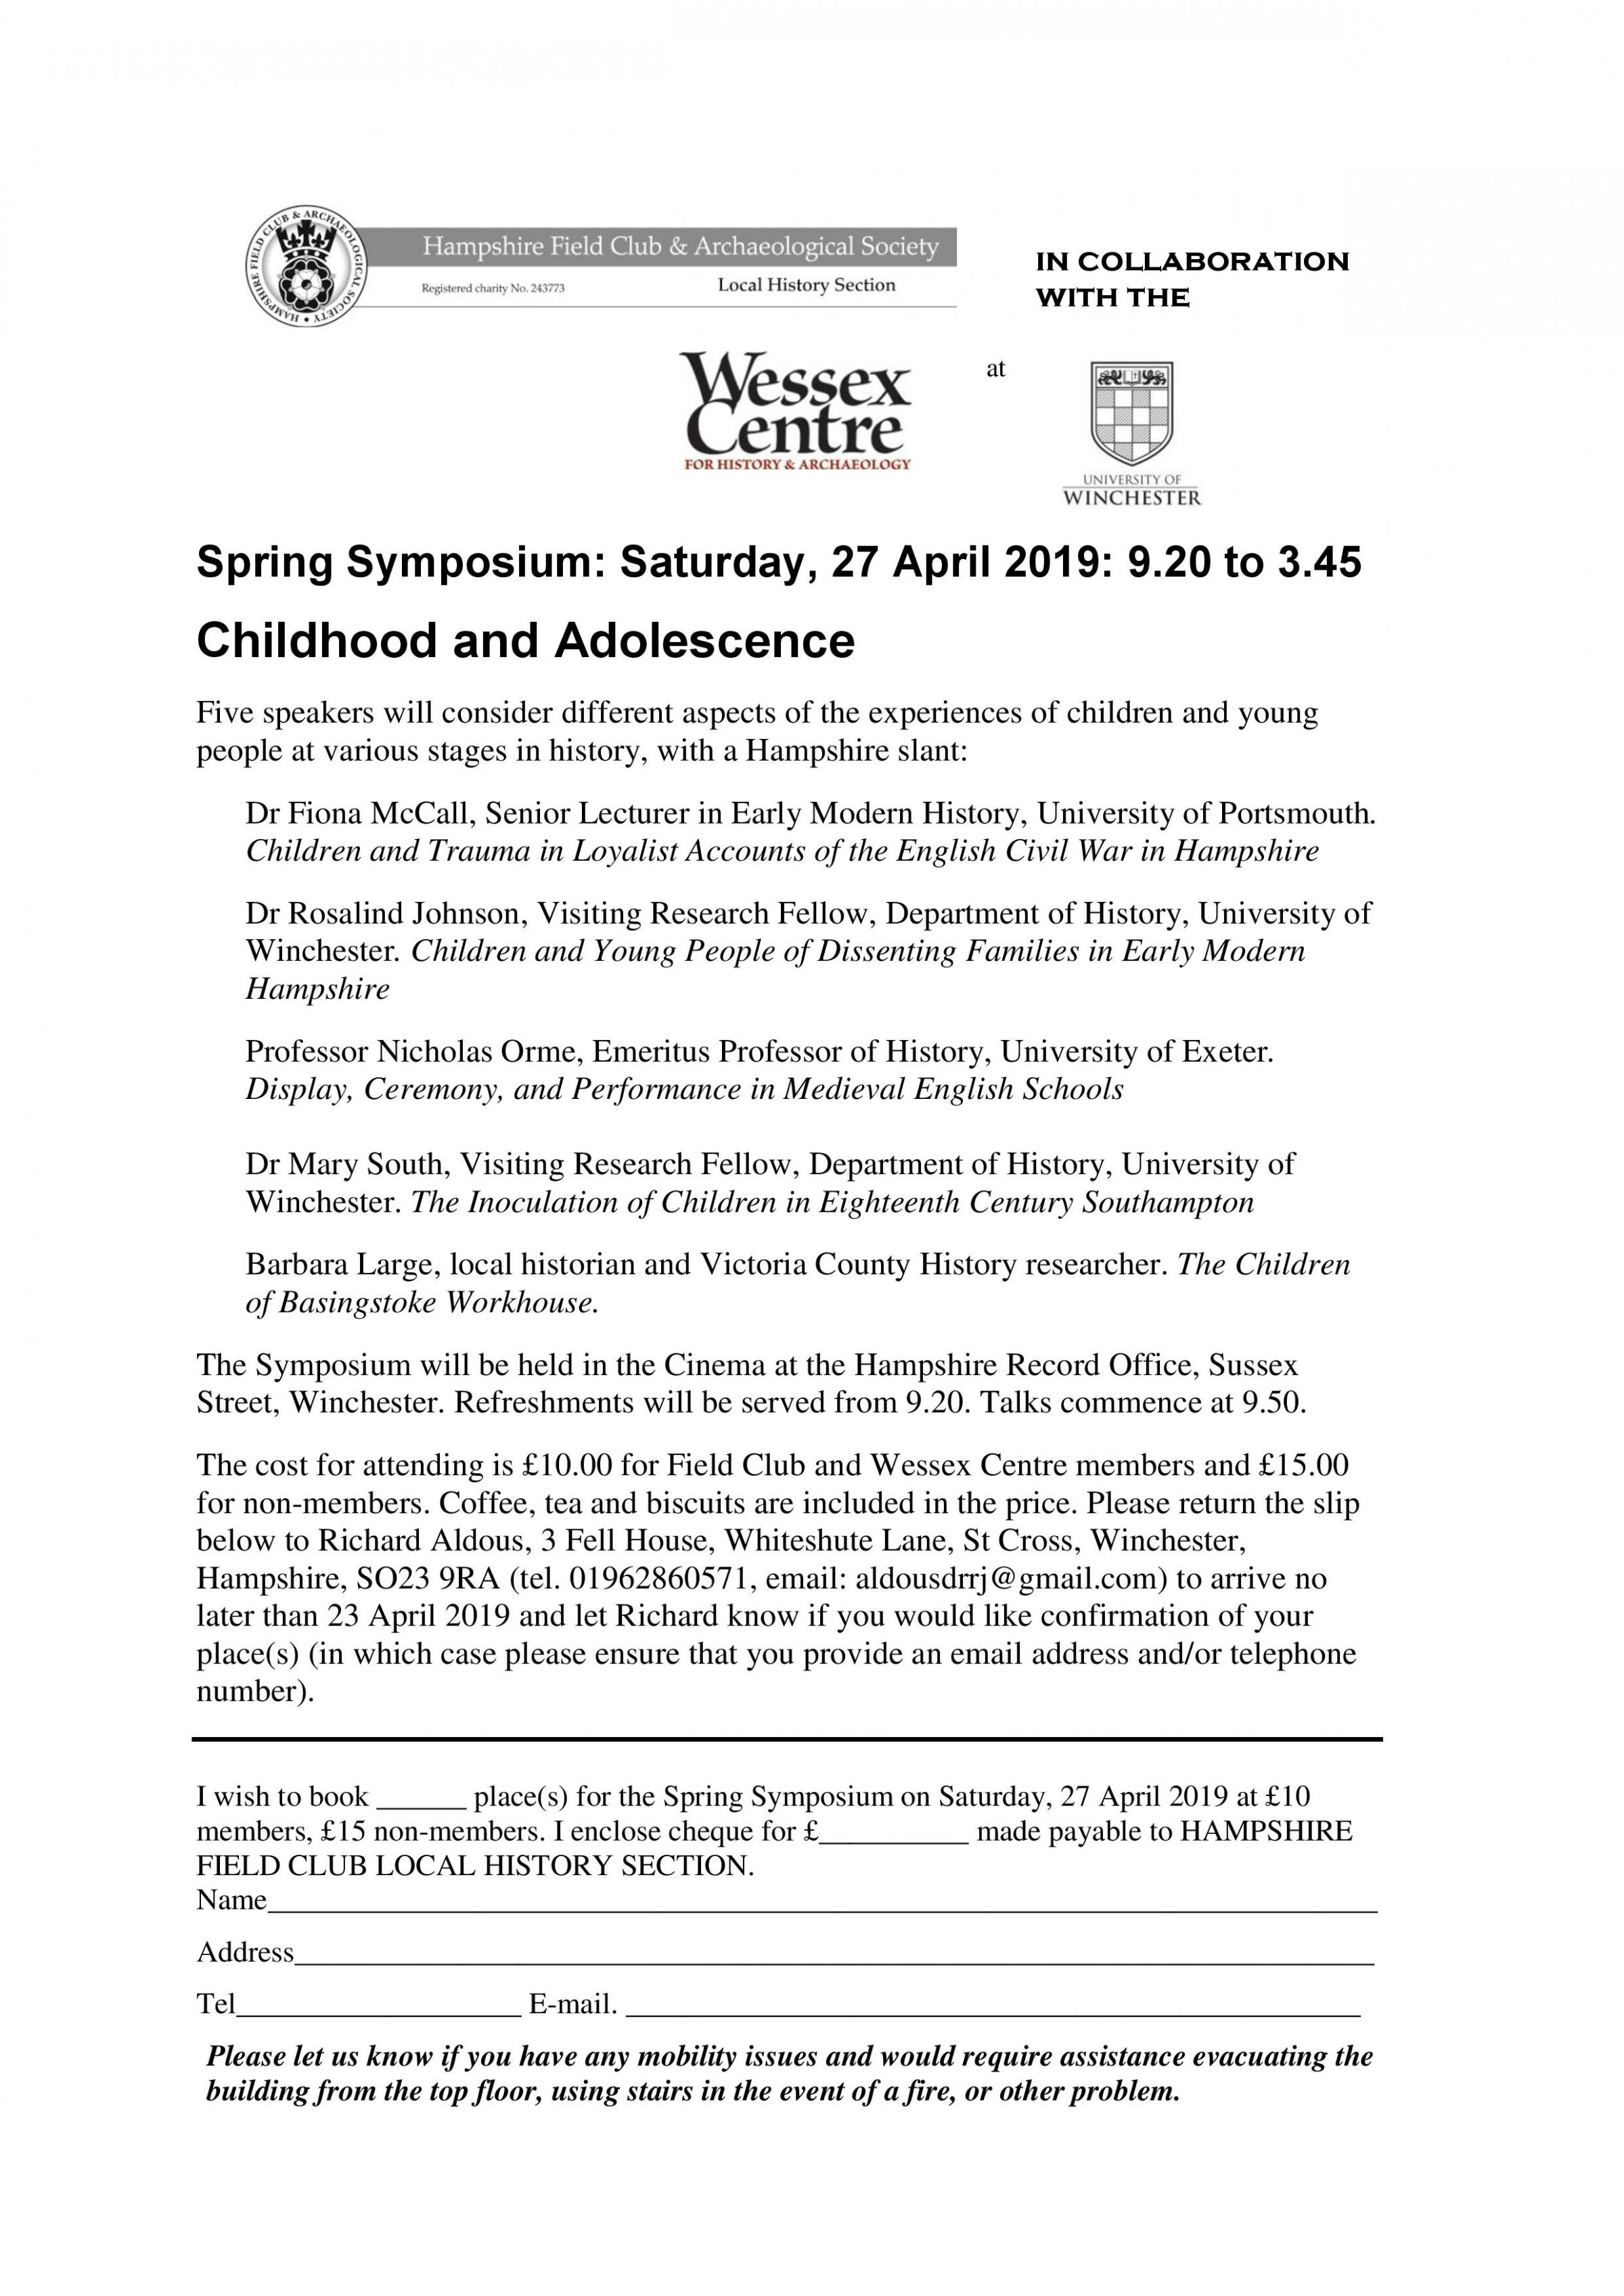 Childhood and Adolescence: Spring Symposium